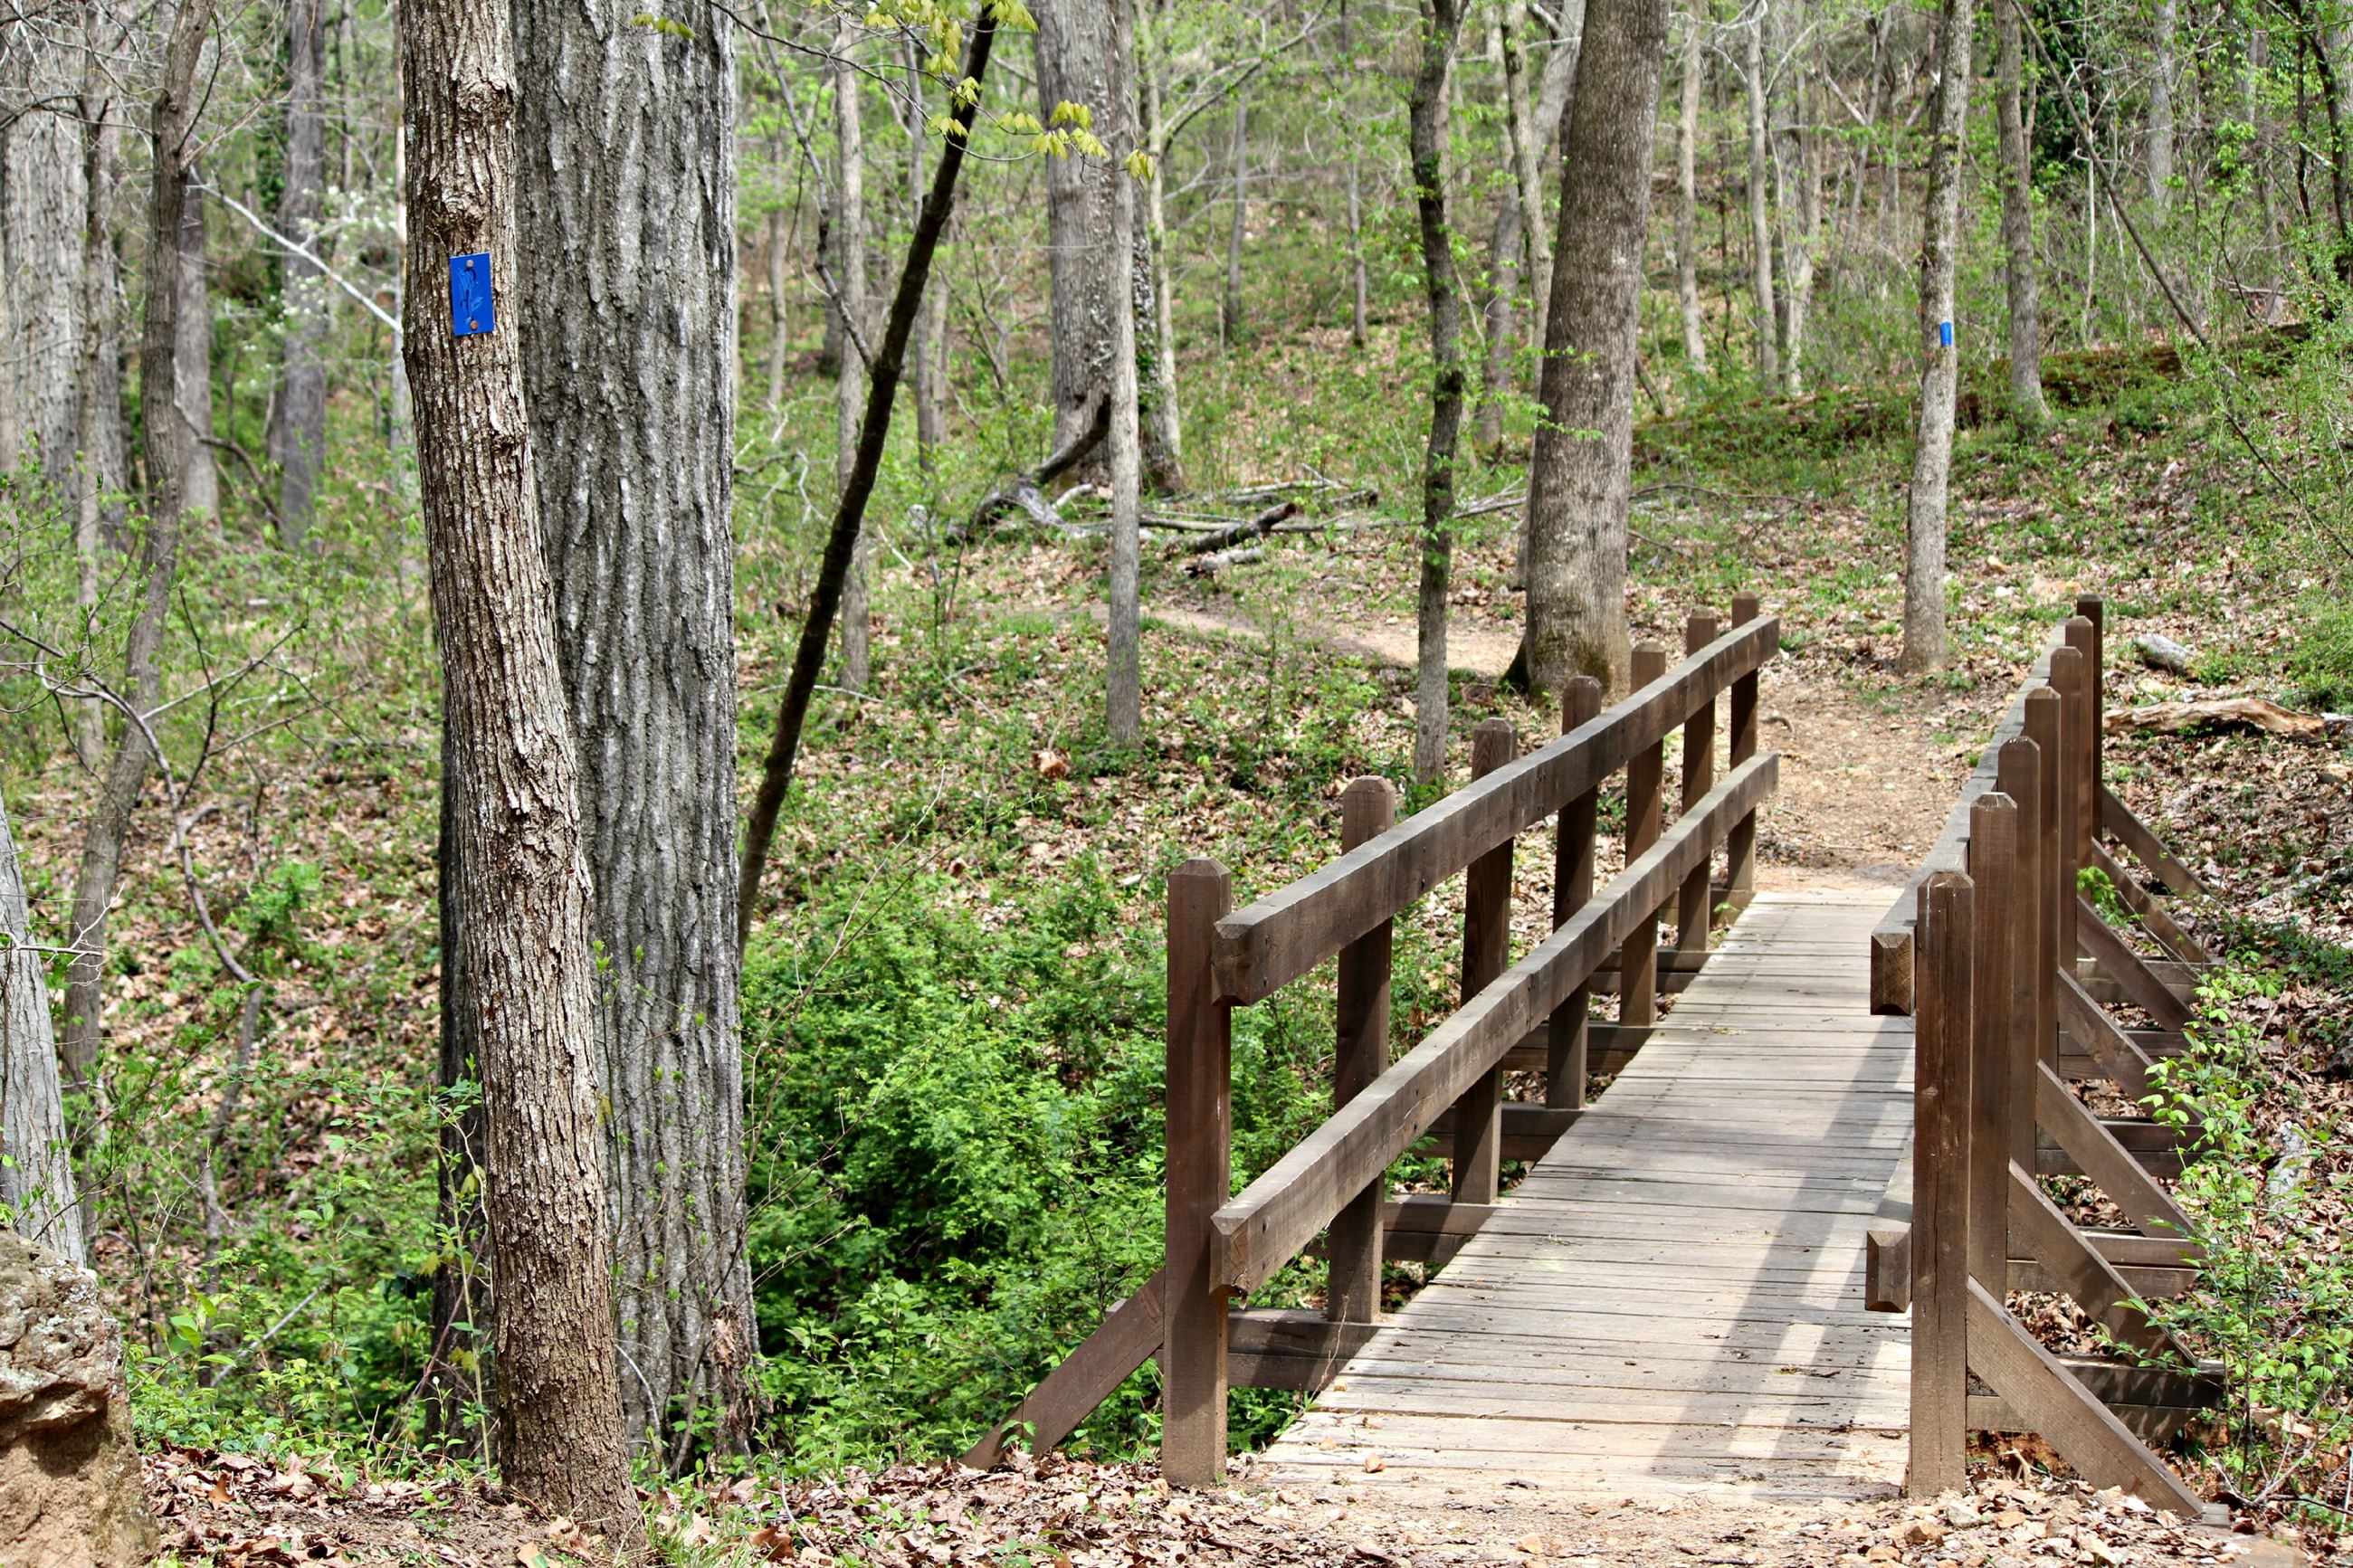 Image of a trail in the woods with a foot bridge